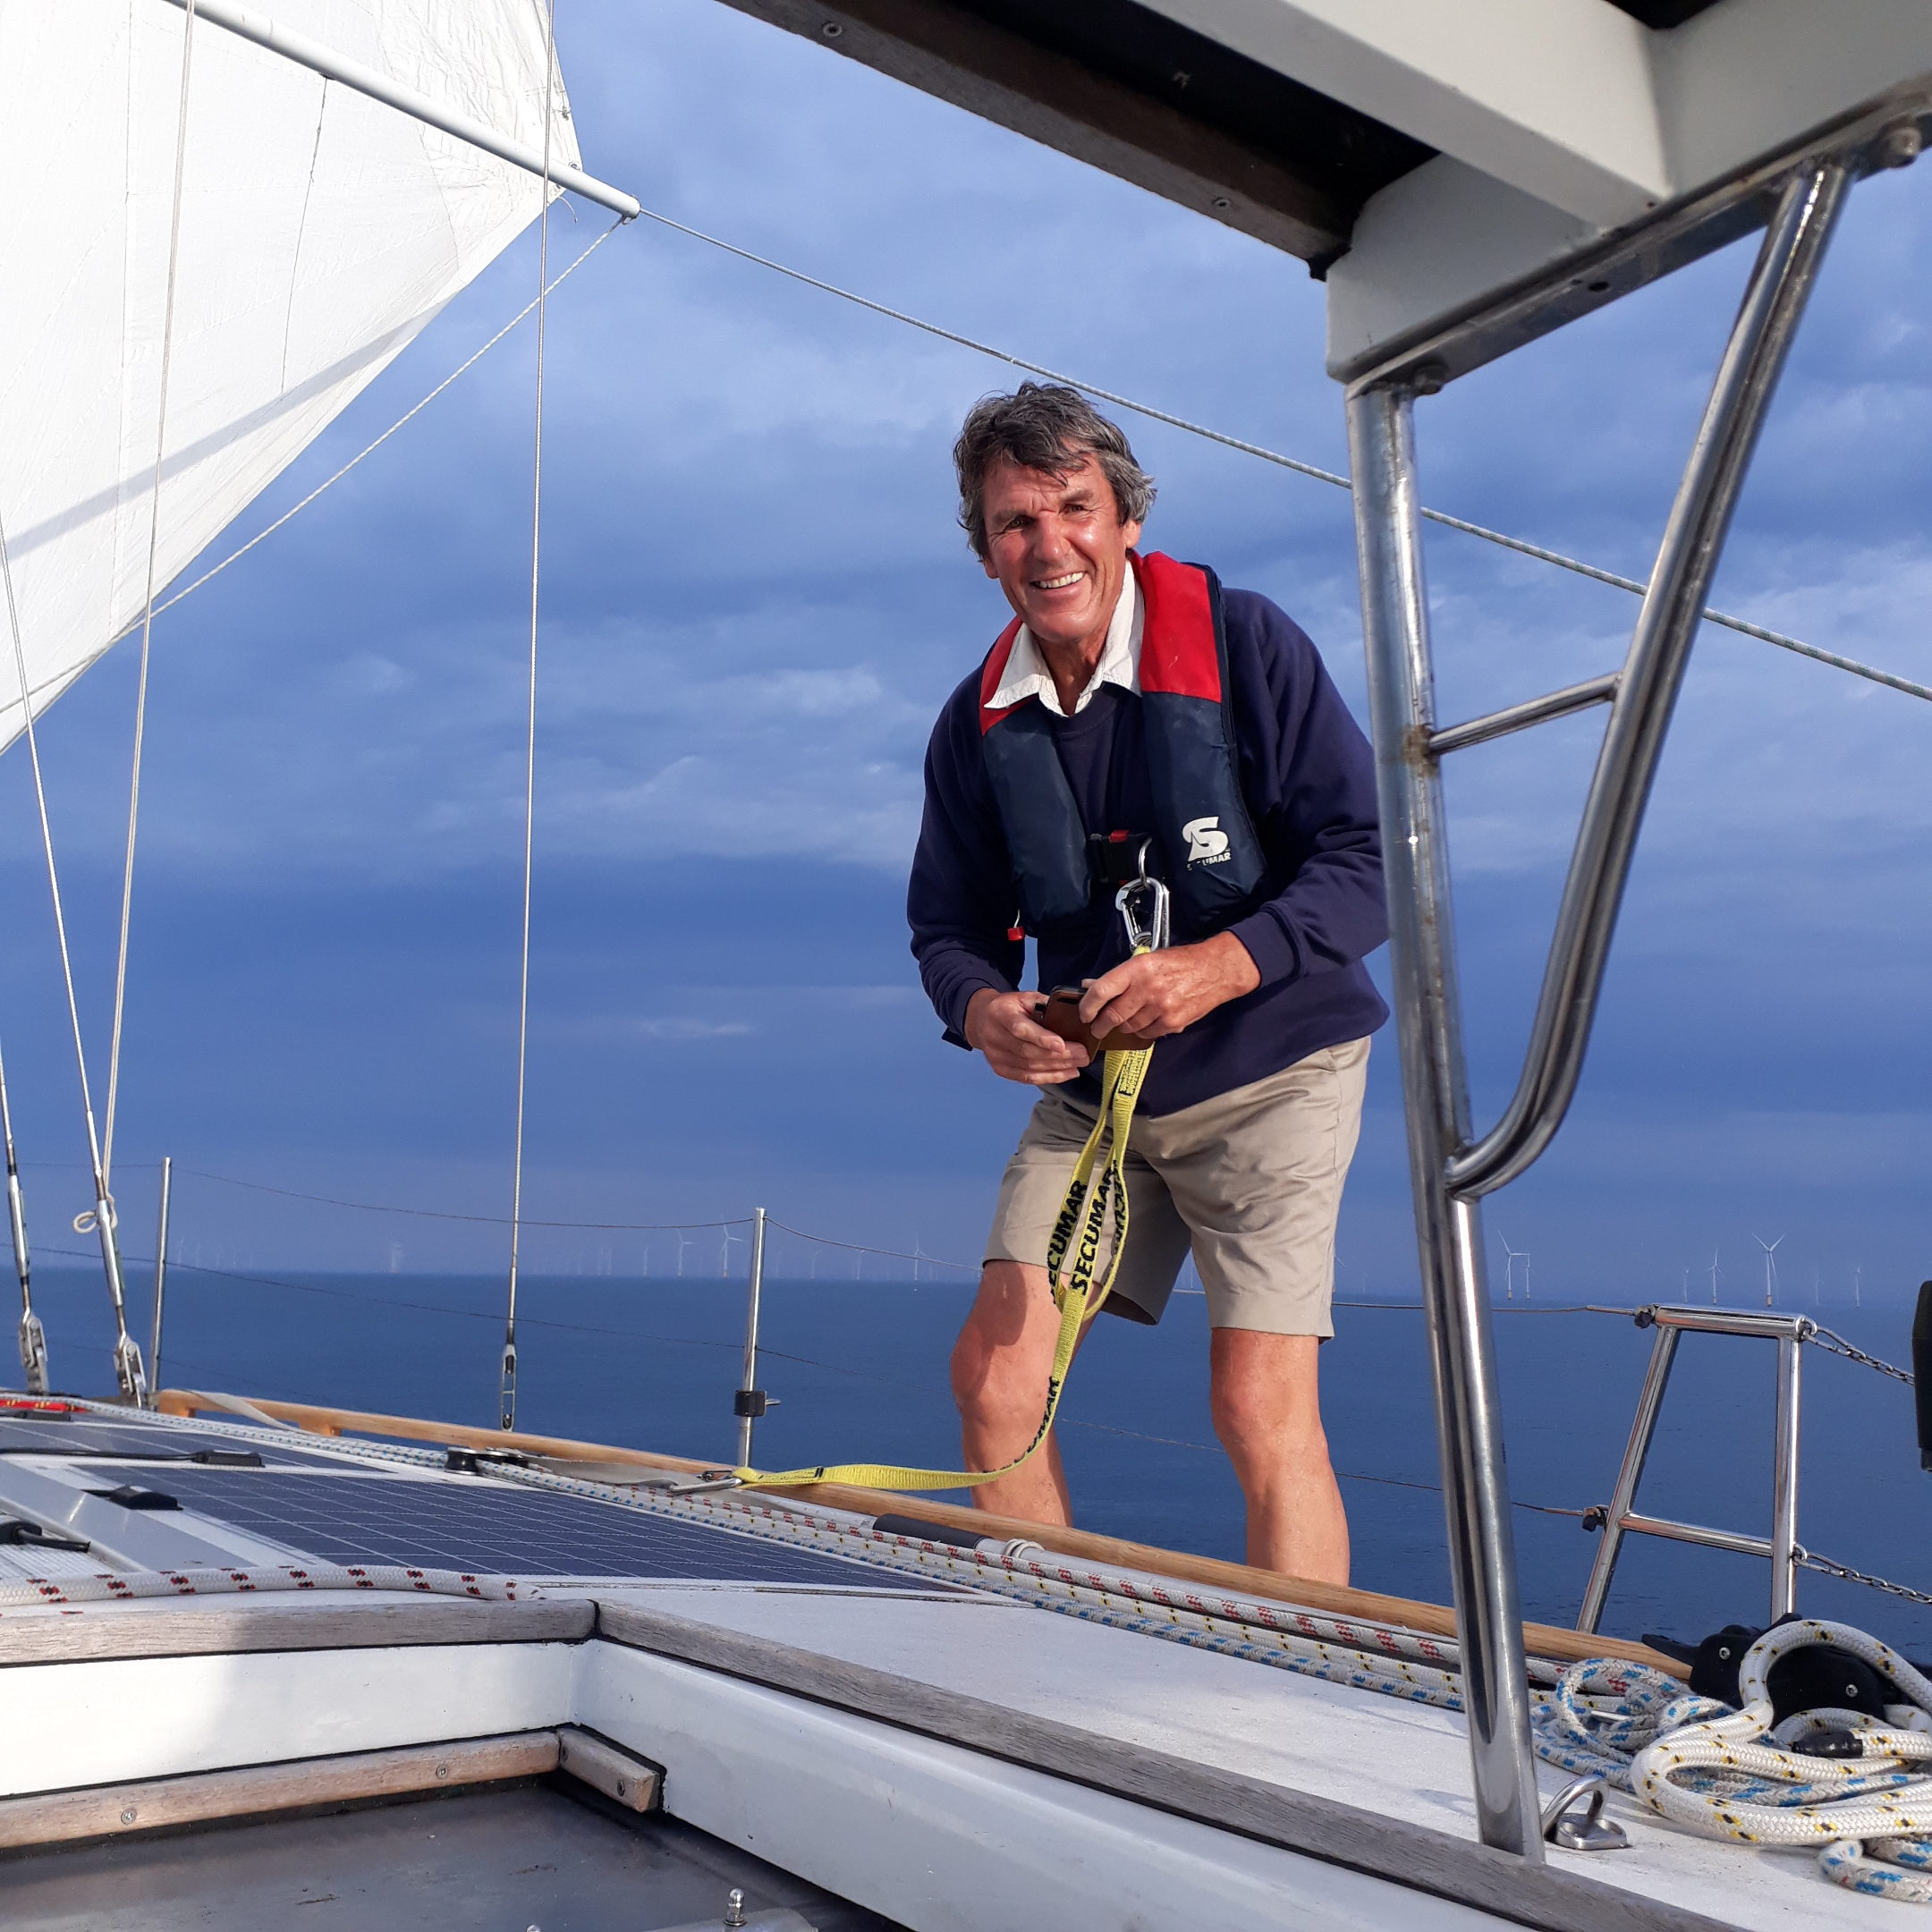 Philip Merricks on his way to take a picuture near the 'Rampion' windmilpark west of Rye